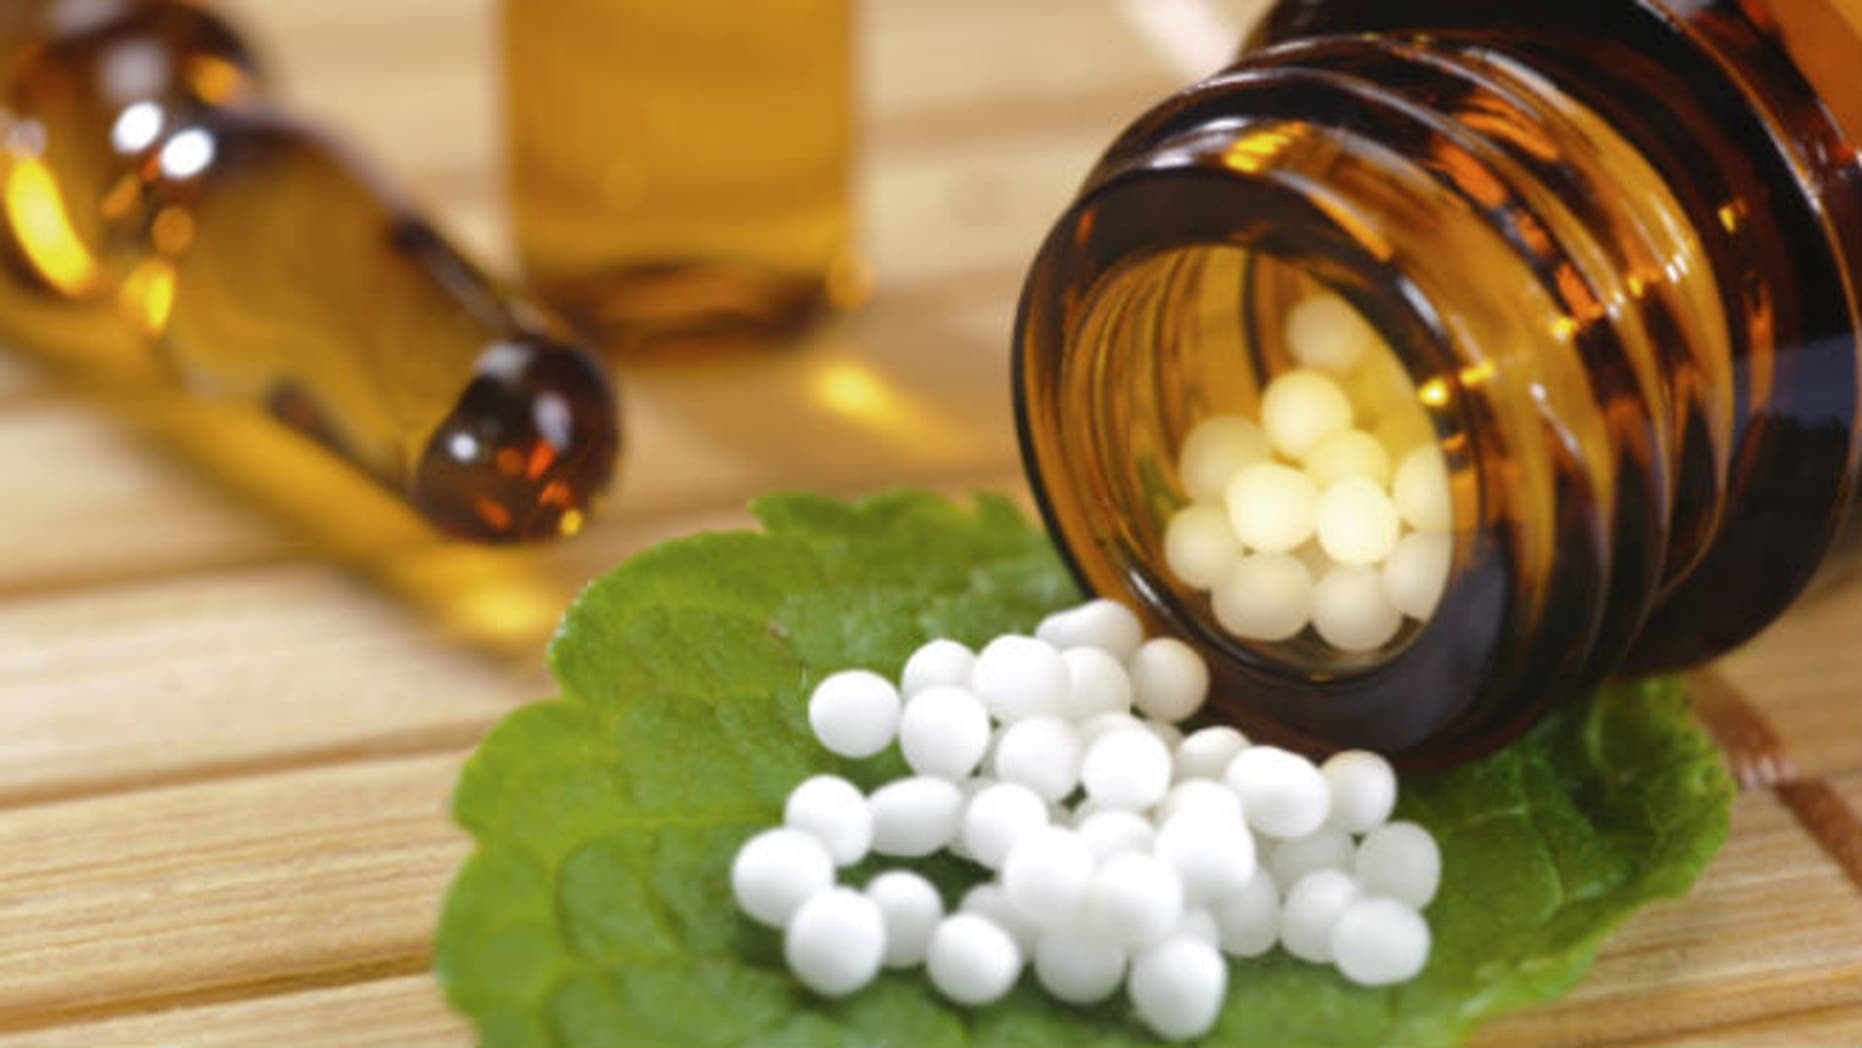 Should you use homeopathic medicine for your baby? | Fox News